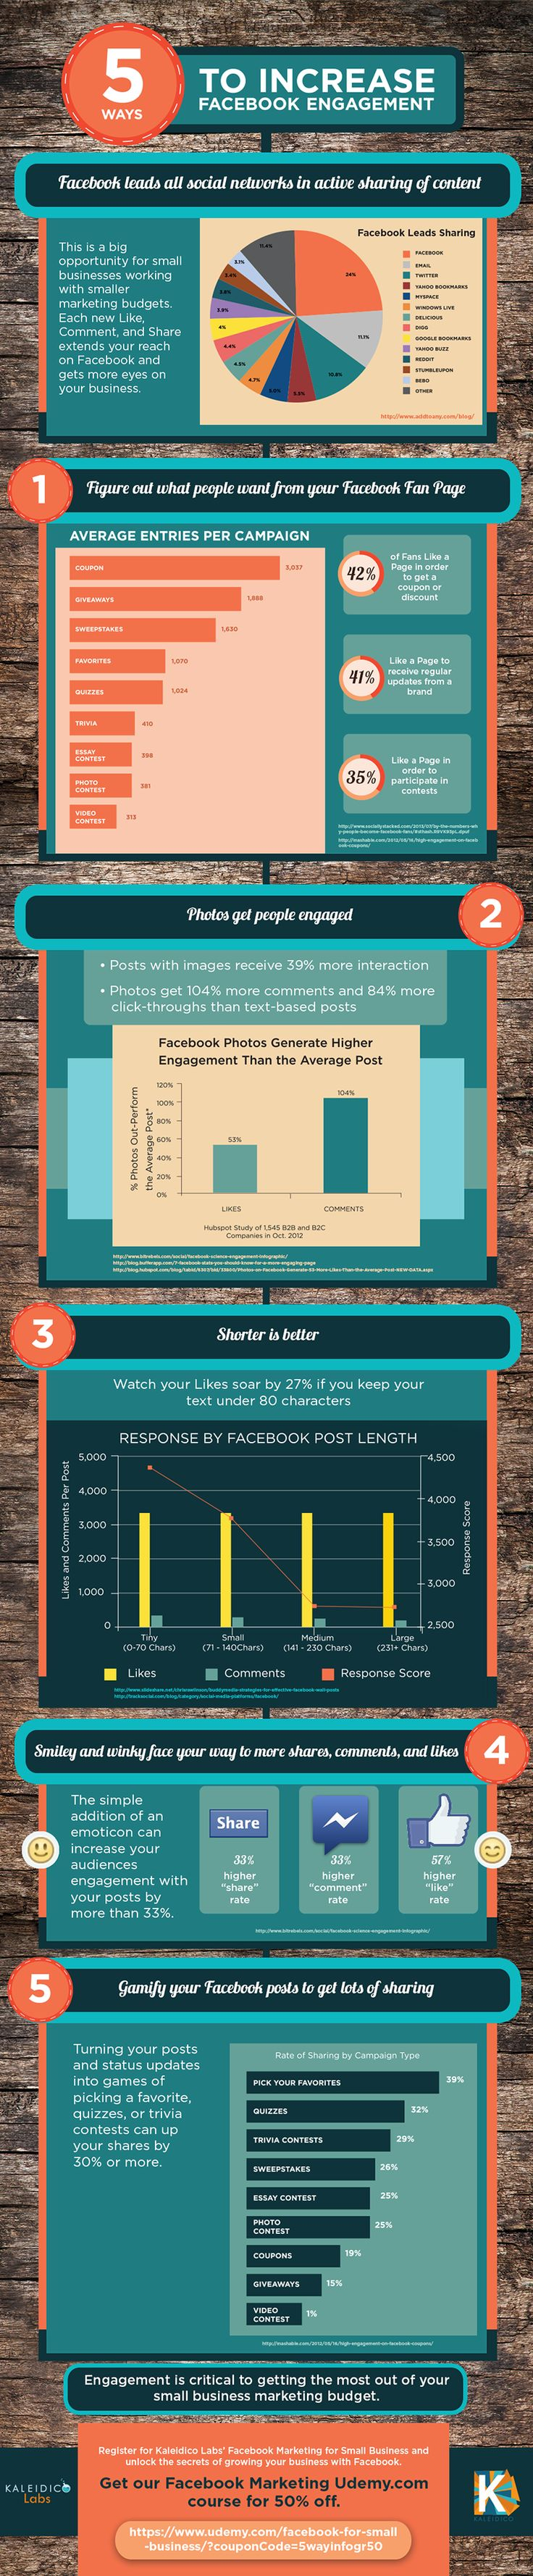 5 Tips to increase Facebook Engagement #infografia #infographic #socialmedia: Sur Facebook, Social Media, Facebook Marketing, Socialmedia Infographic, Facebook Engagement, Increase Facebook